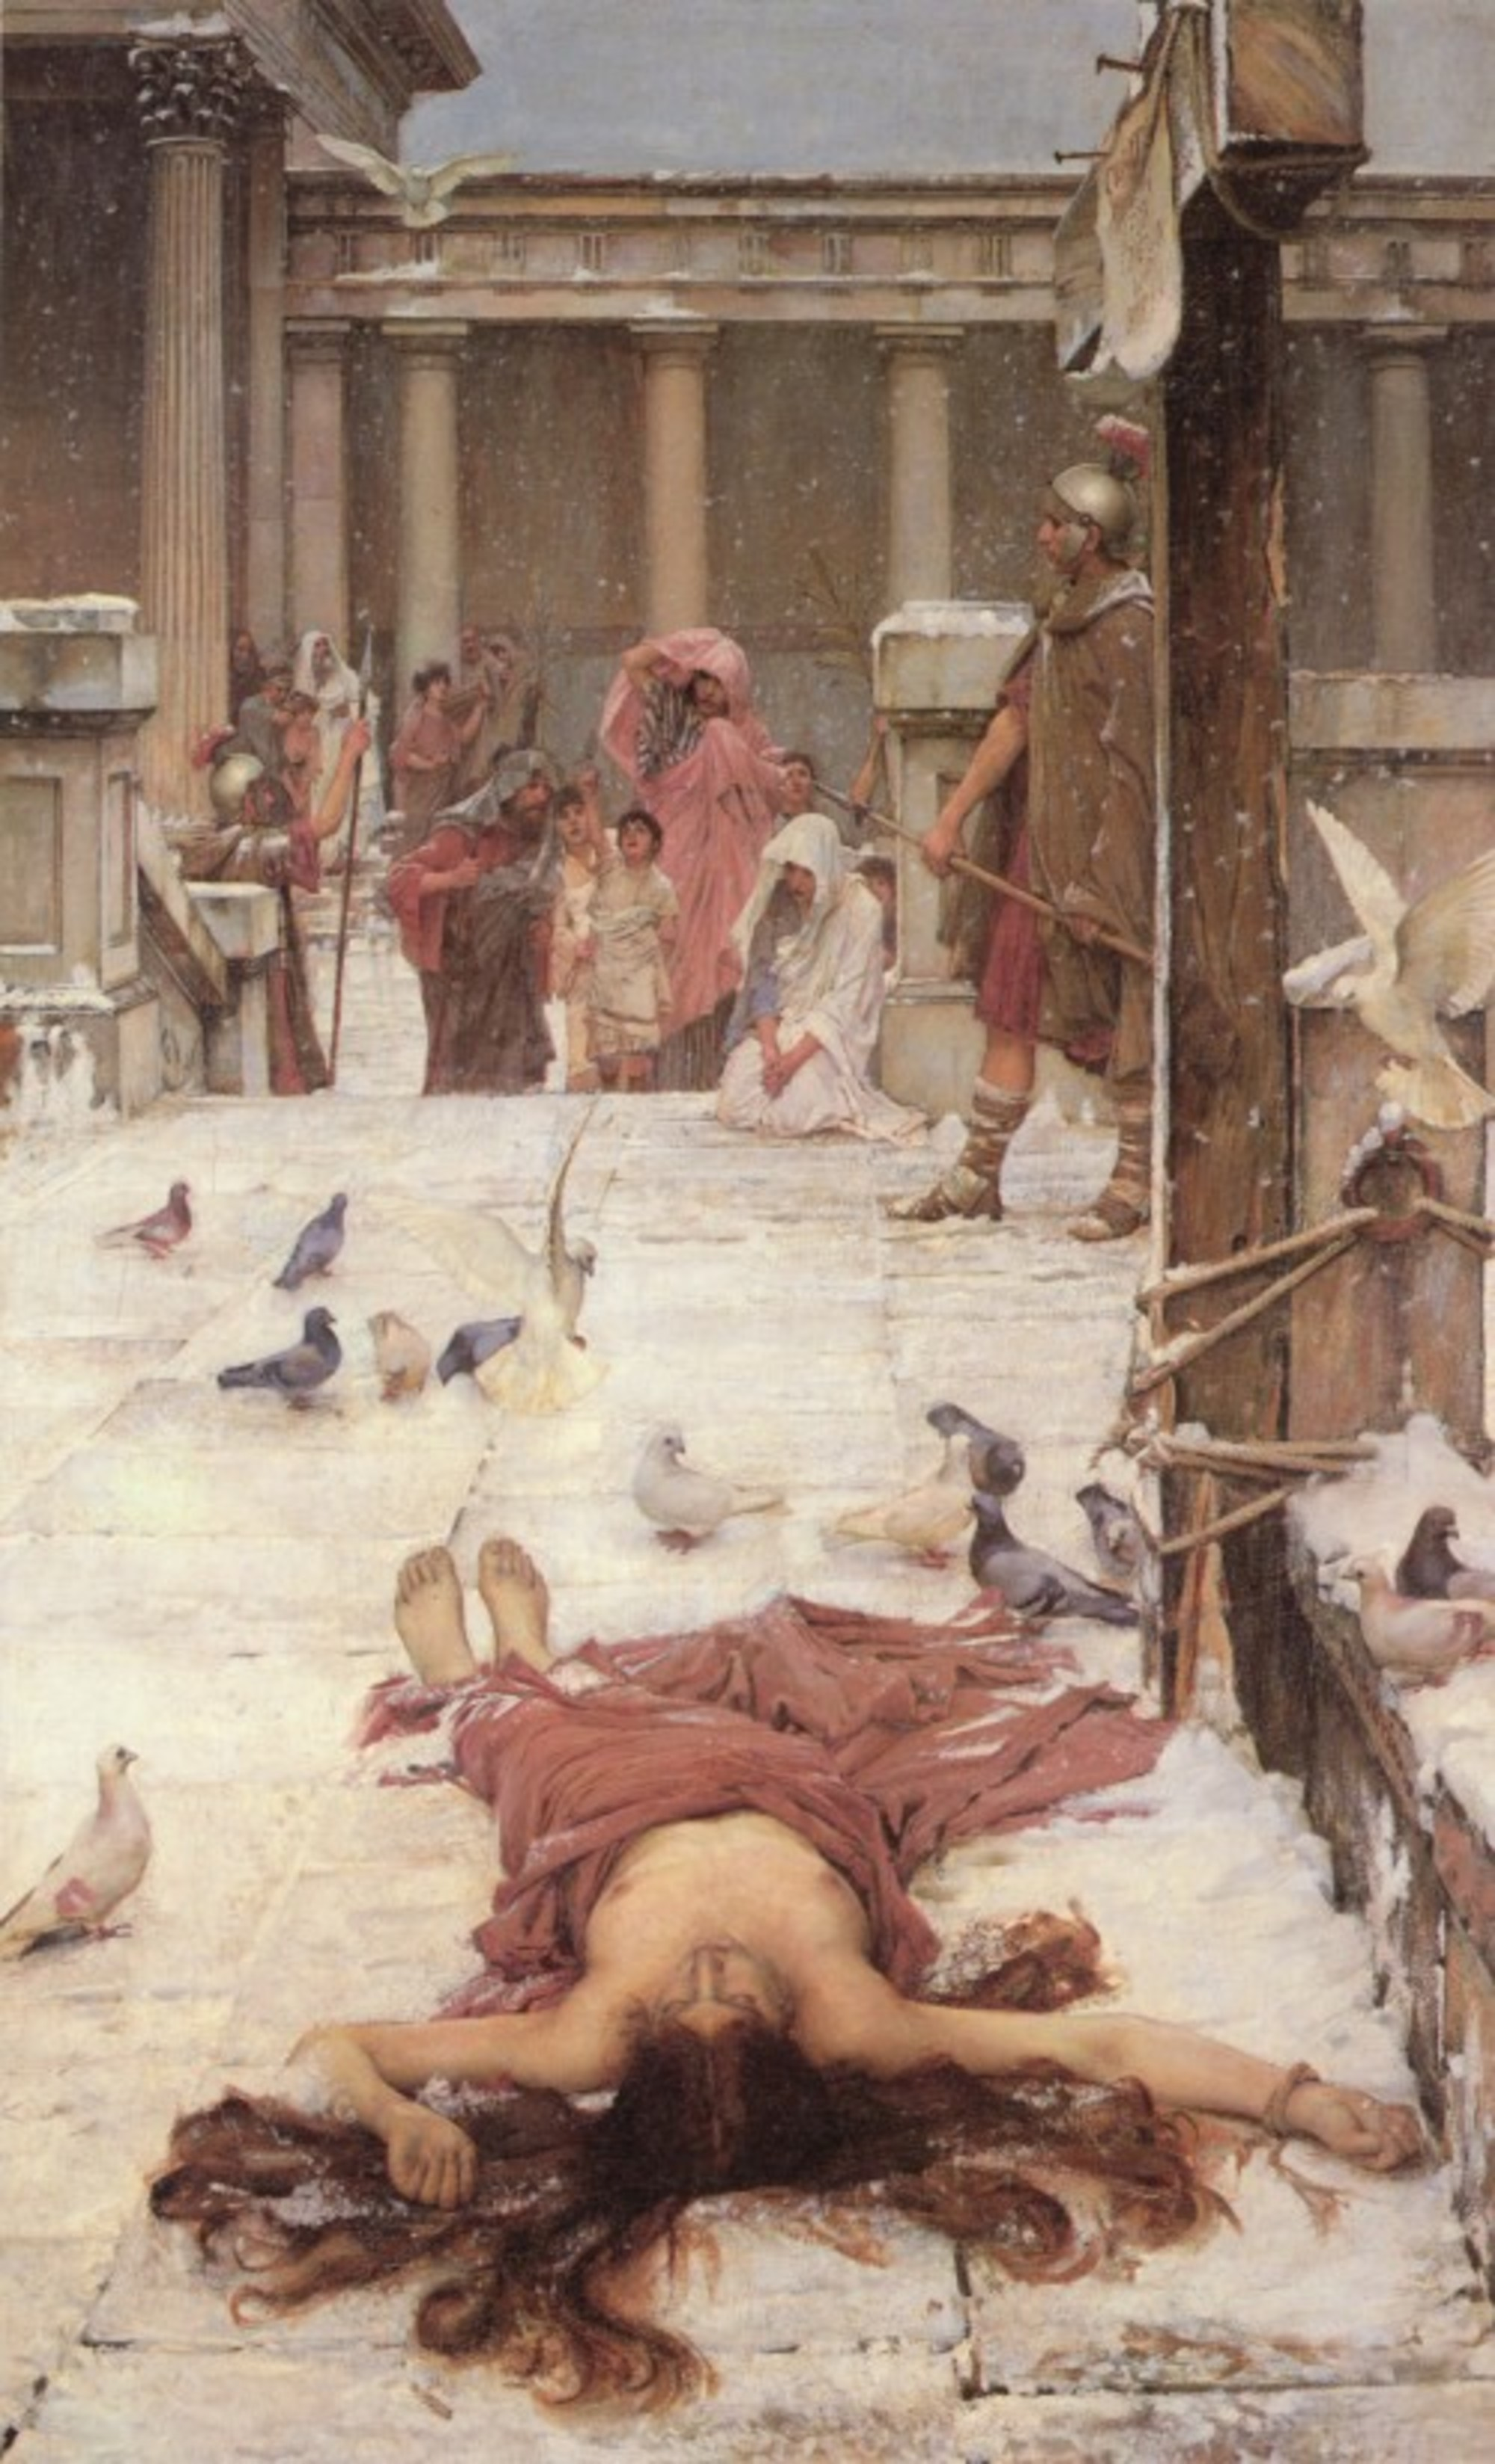 John_William_Waterhouse_-_Saint_Eulalia_-_1885.jpg